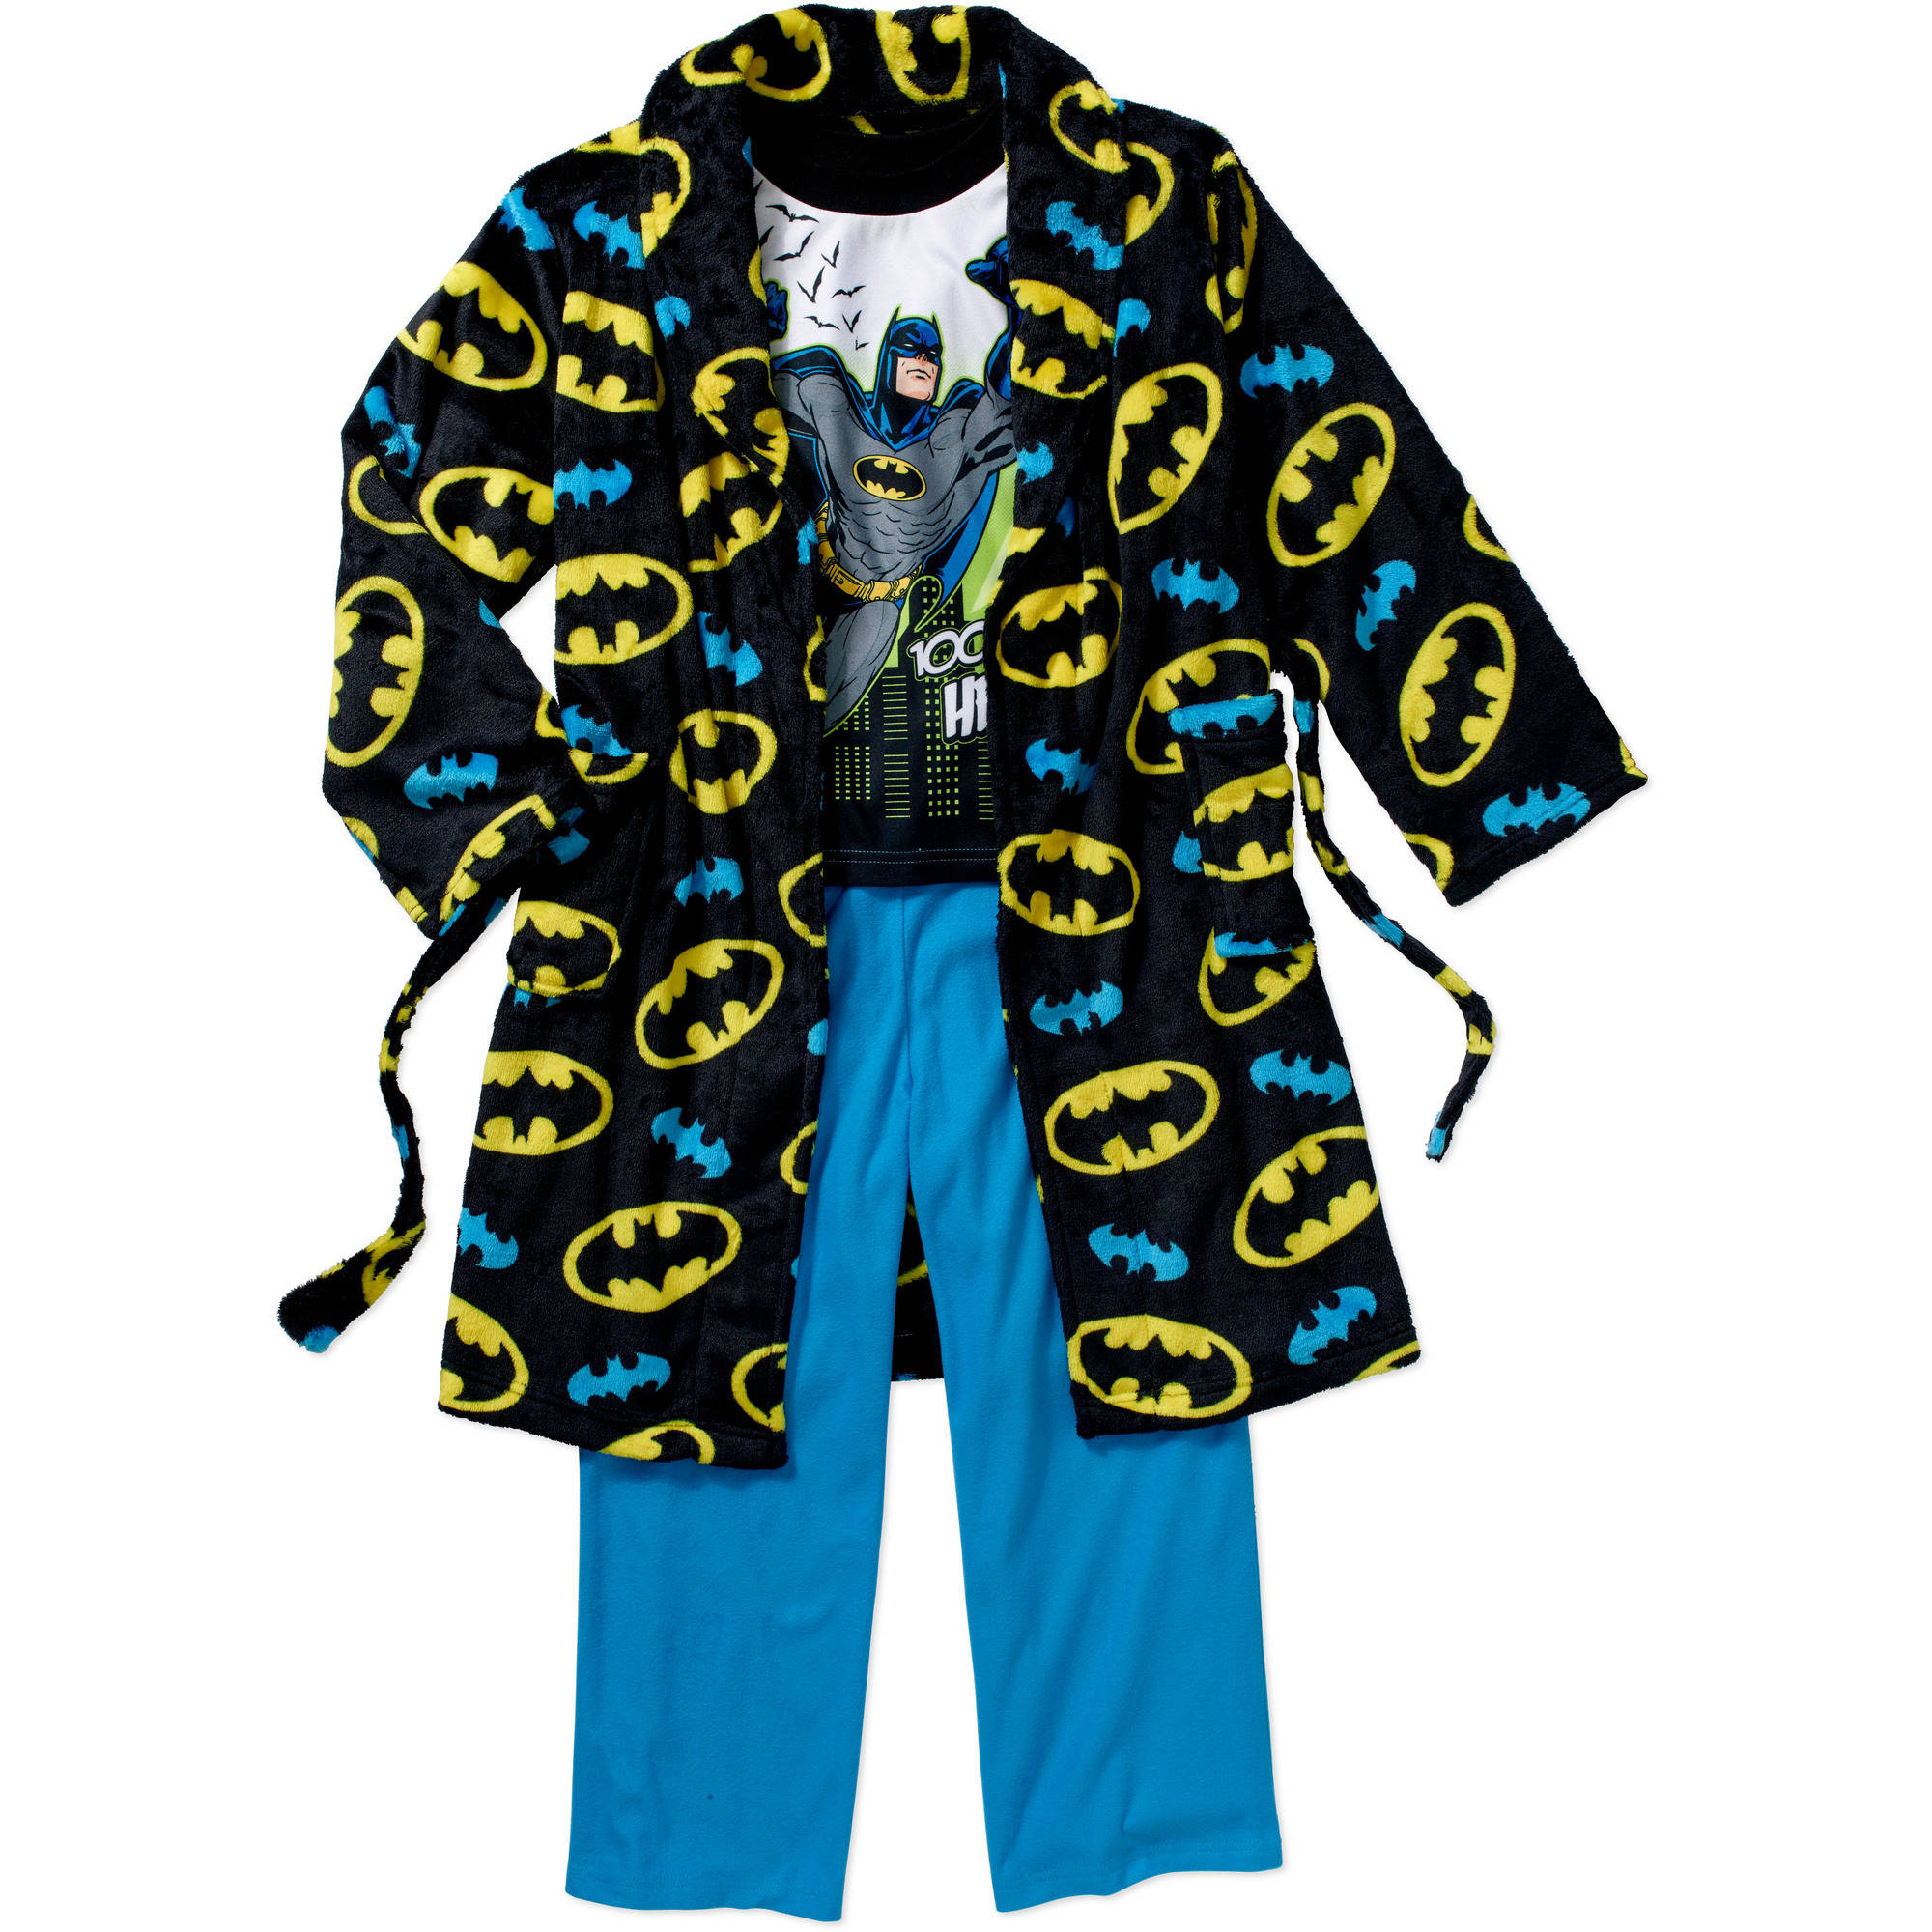 Boys' Licensed 3 Piece Robe Set, Available in 5 Characters